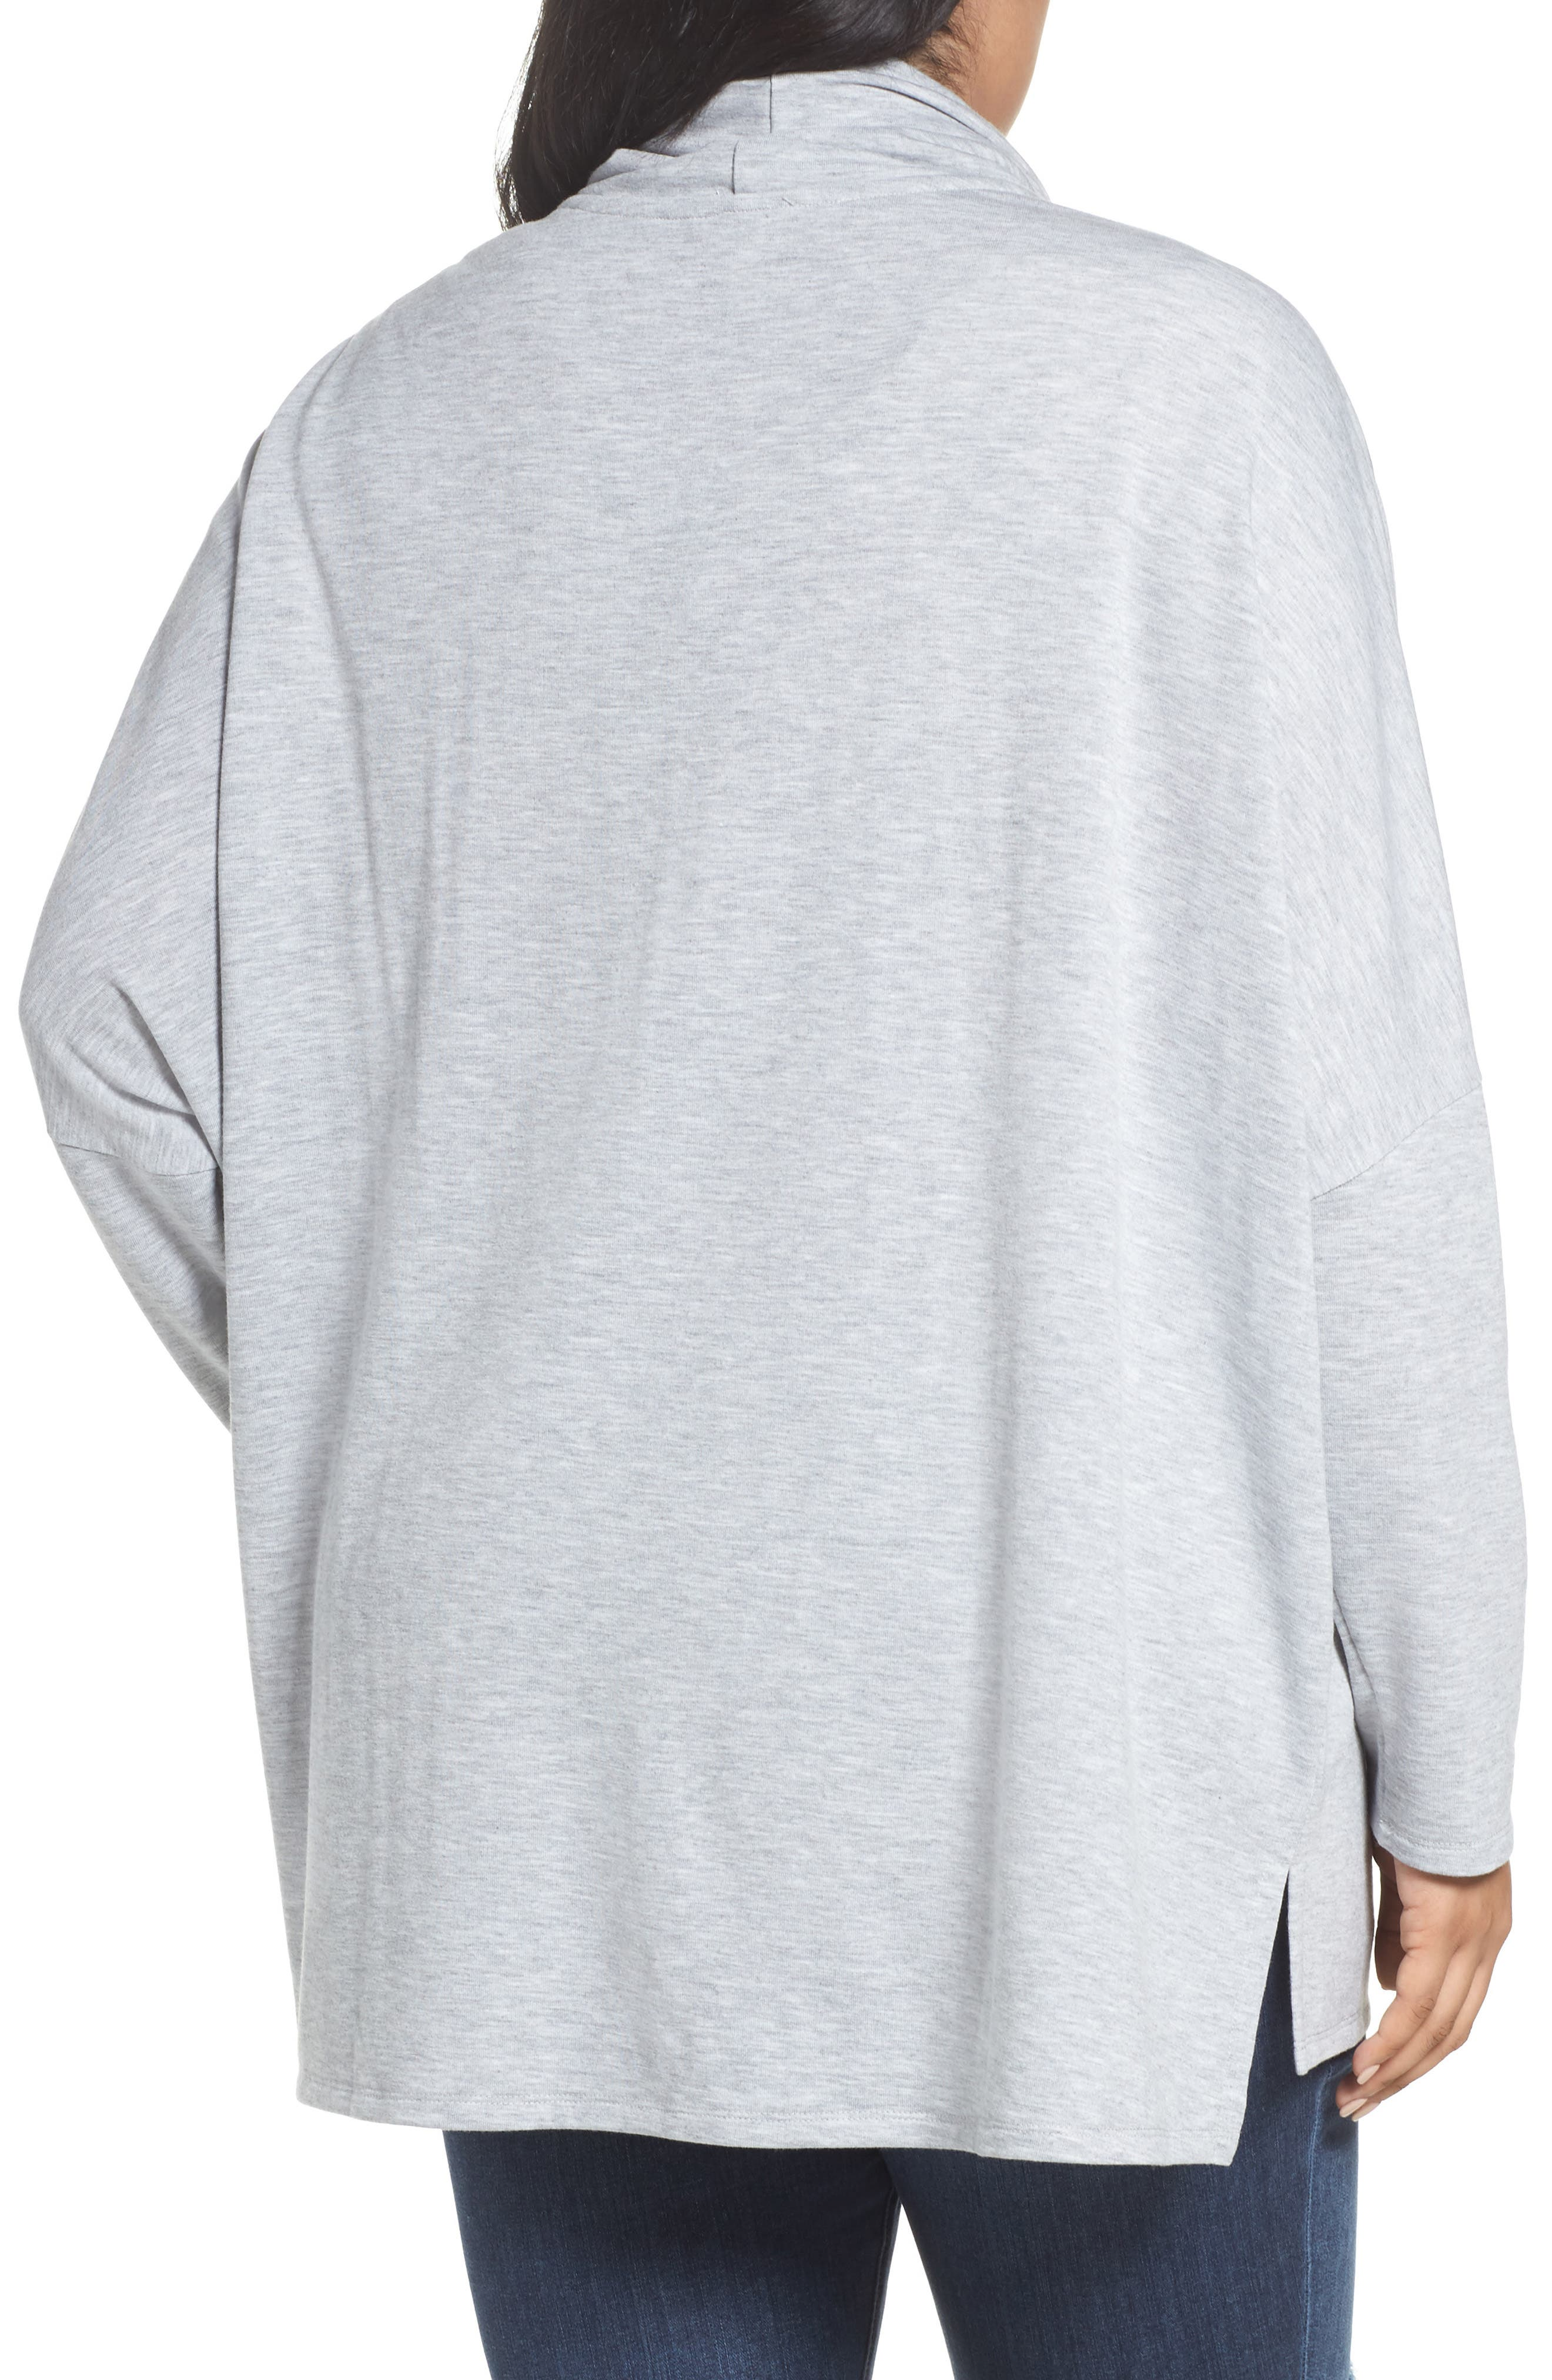 Cowl Neck Tunic,                             Alternate thumbnail 2, color,                             Grey Heather